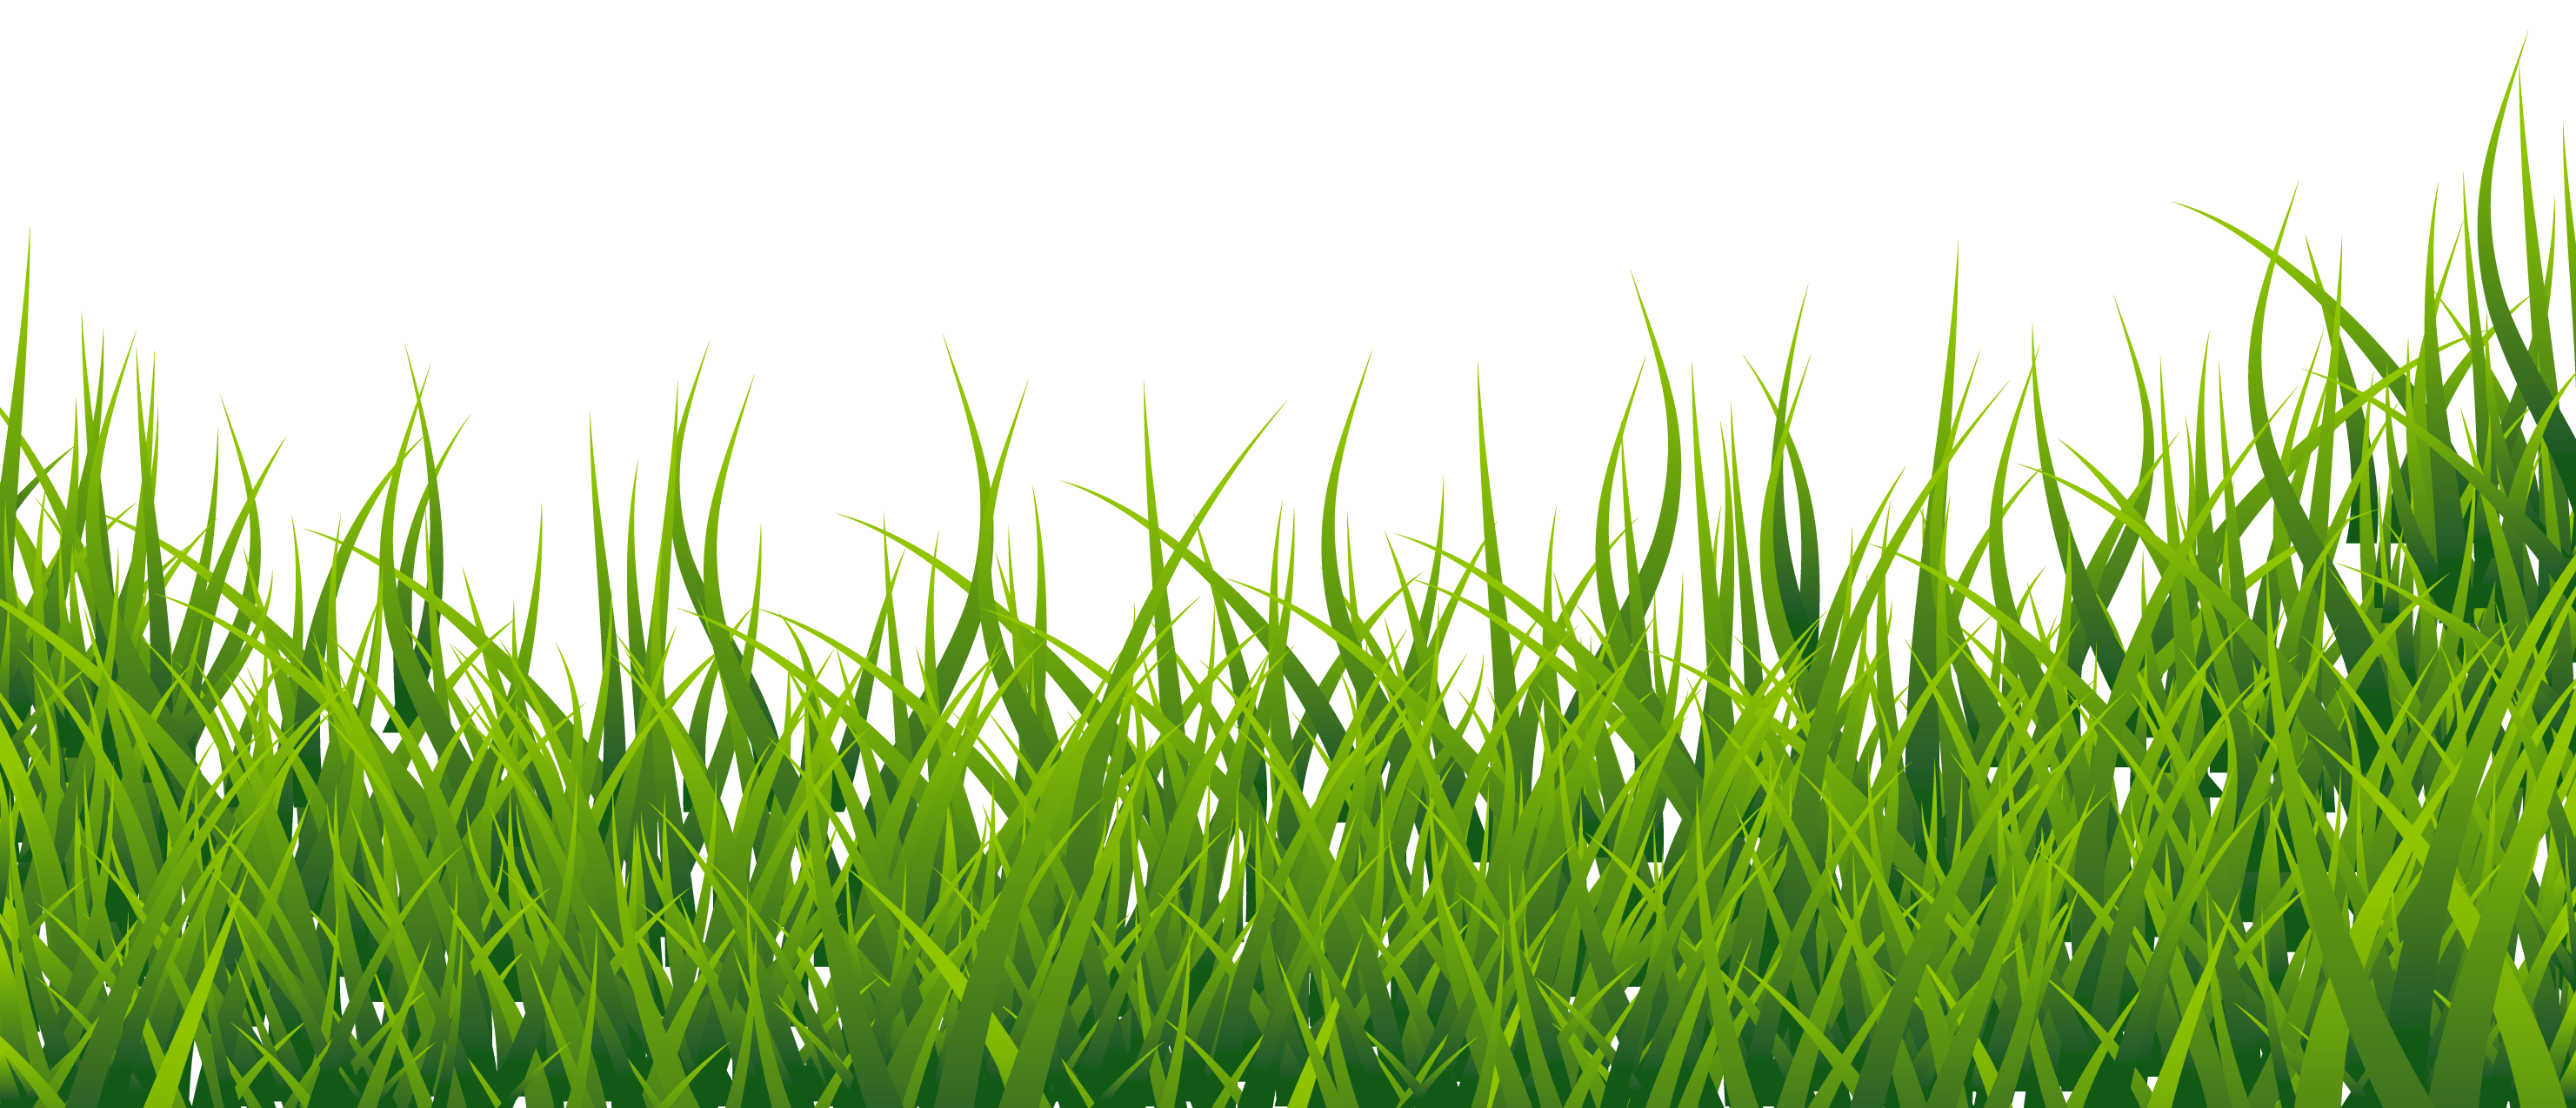 Picture gallery yopriceville high. Outline clipart grass